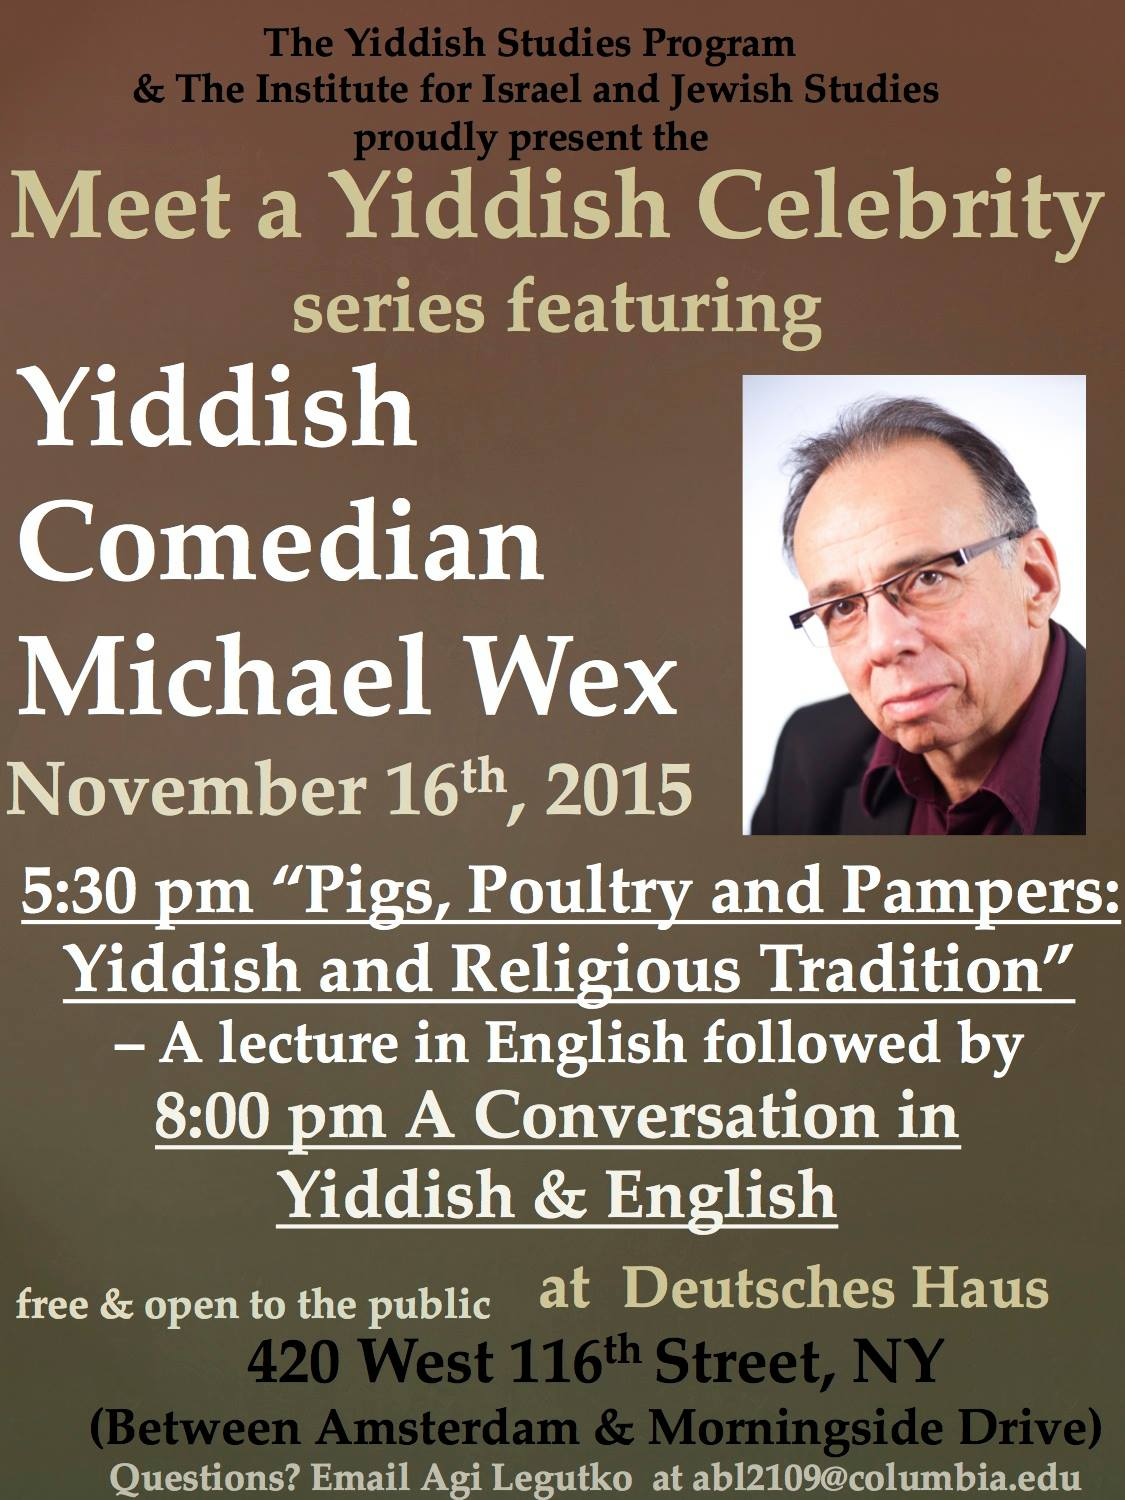 Pigs, Poultry, and Pampers: Yiddish and Religious Traditions